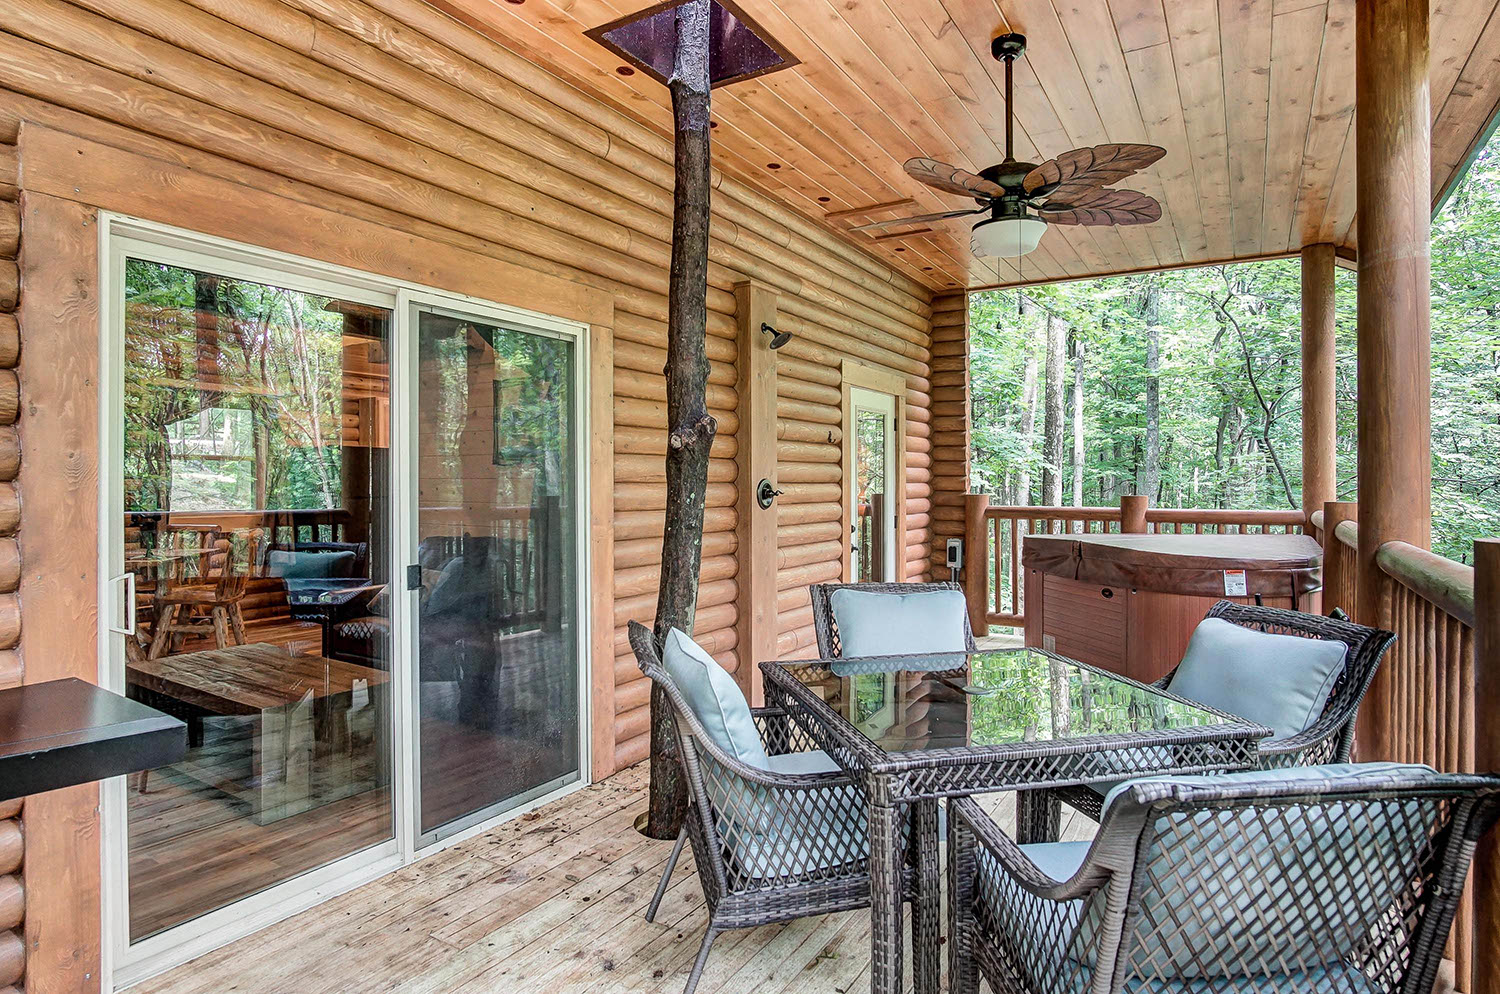 Treehouse Back Deck - Back Deck with hot tub, outdoor shower, grill and seating